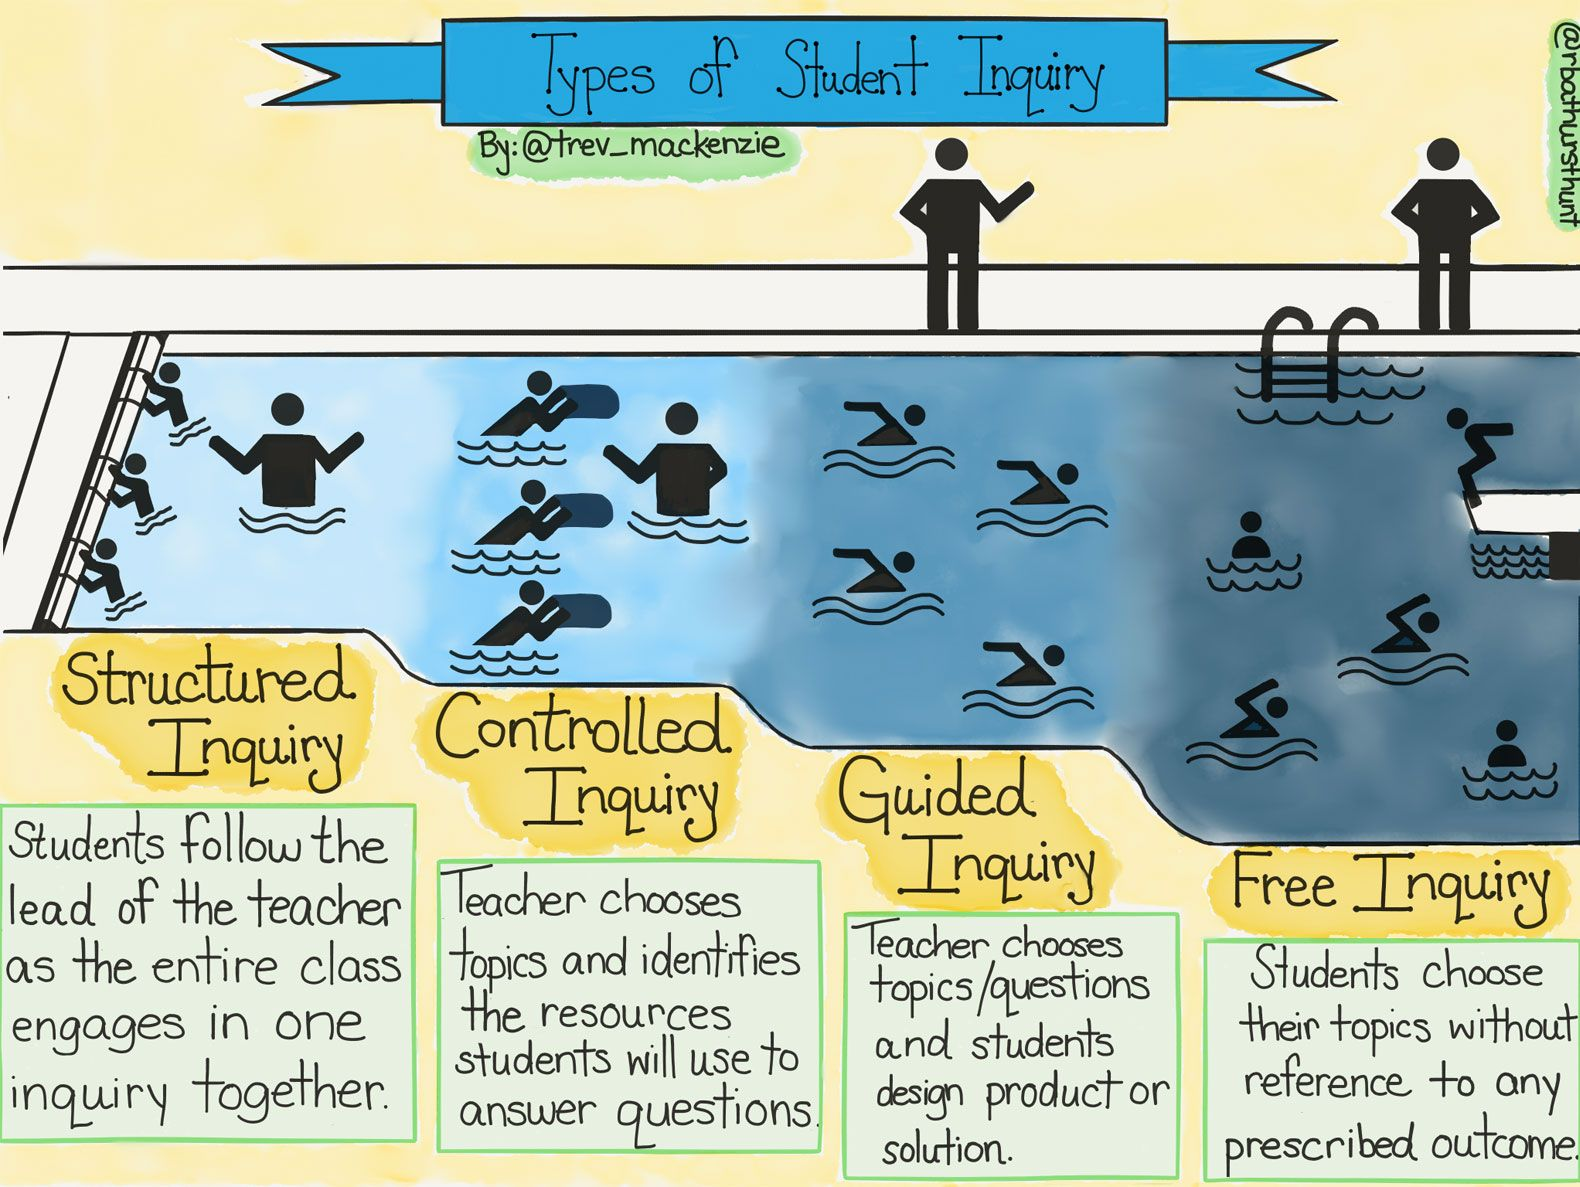 Bringing Inquiry-Based Learning Into Your Class | Edutopia